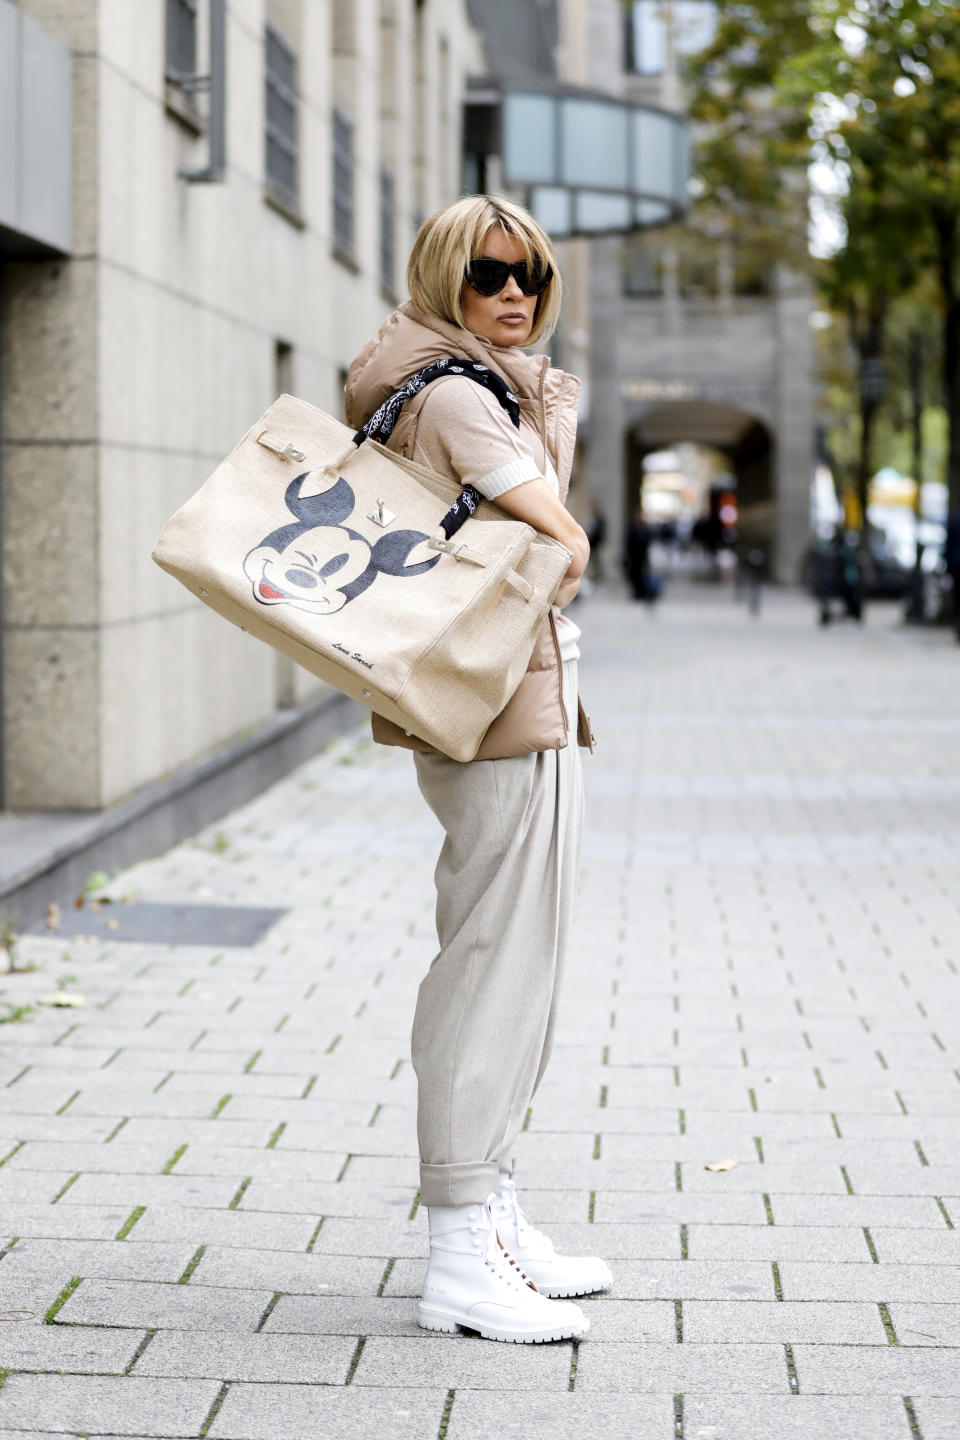 DUSSELDORF, GERMANY - OCTOBER 23: Influencer Gitta Banko, wearing a beige short sleeve turtleneck pullover, a beige vest with hood and beige pants by Madeleine, white boots by Common Project, a beige bast bag with Micky Mouse by Luna Sarah and sunglasses by Bottega Veneta, during a street style shooting on October 23, 2020 in Dusseldorf, Germany. (Photo by Streetstyleshooters/Getty Images)